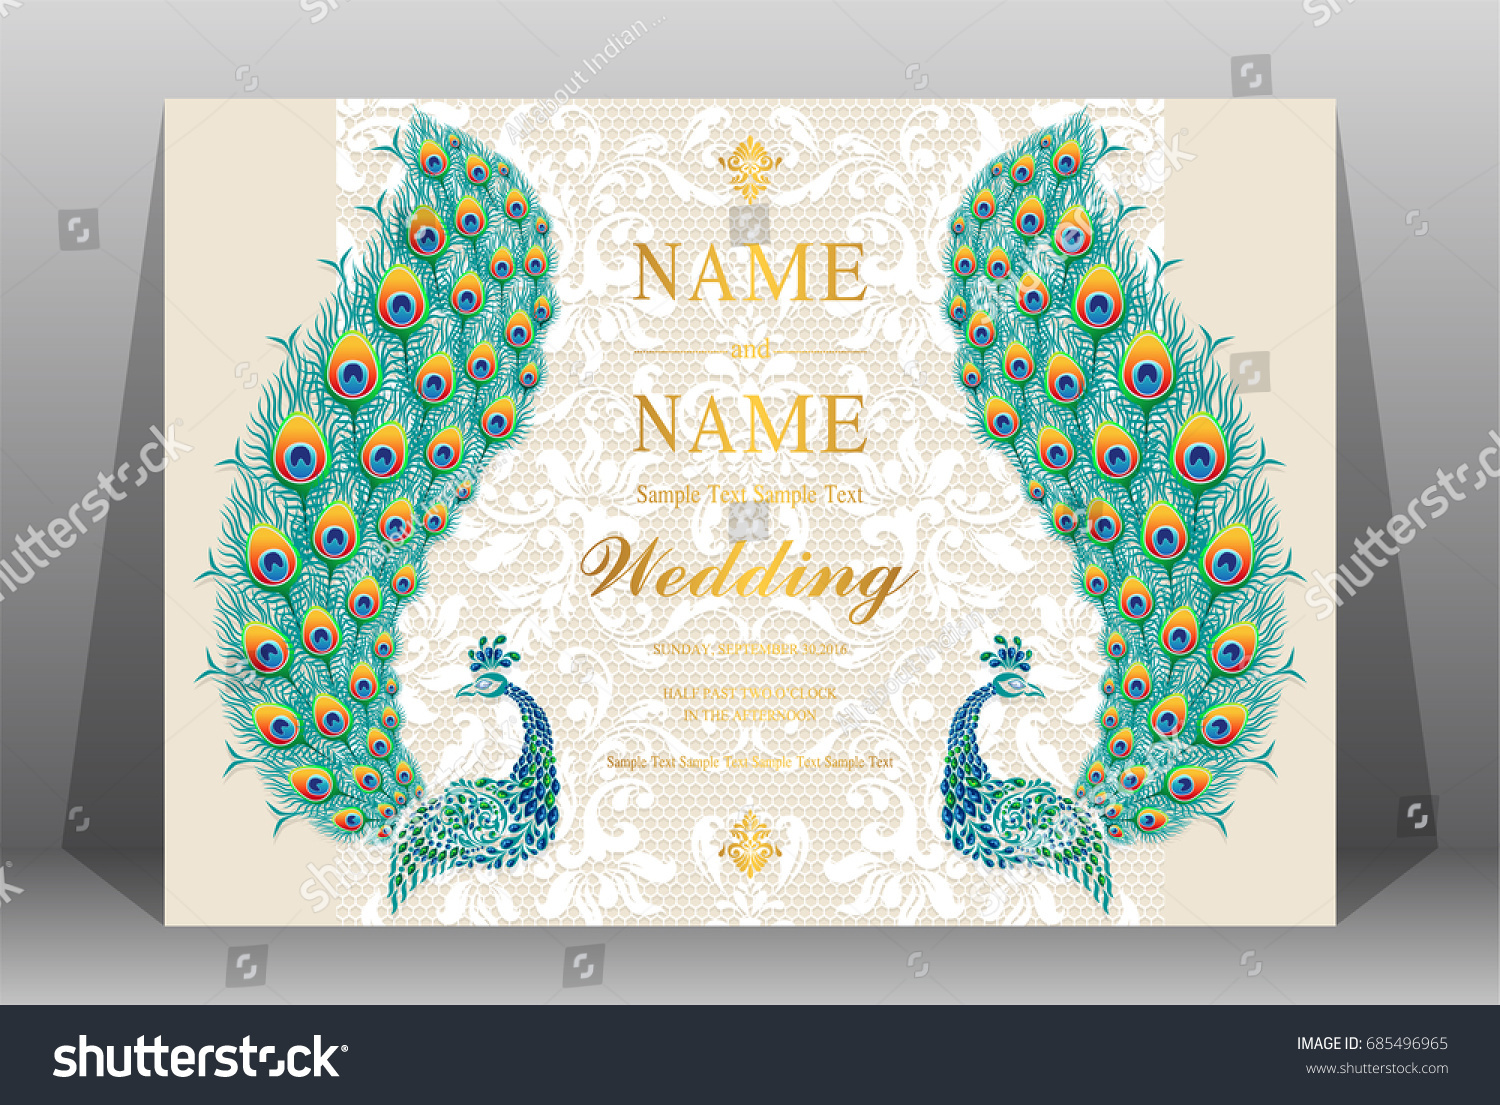 Wedding Invitation Card Templates Peacock Patterned Stock Vector